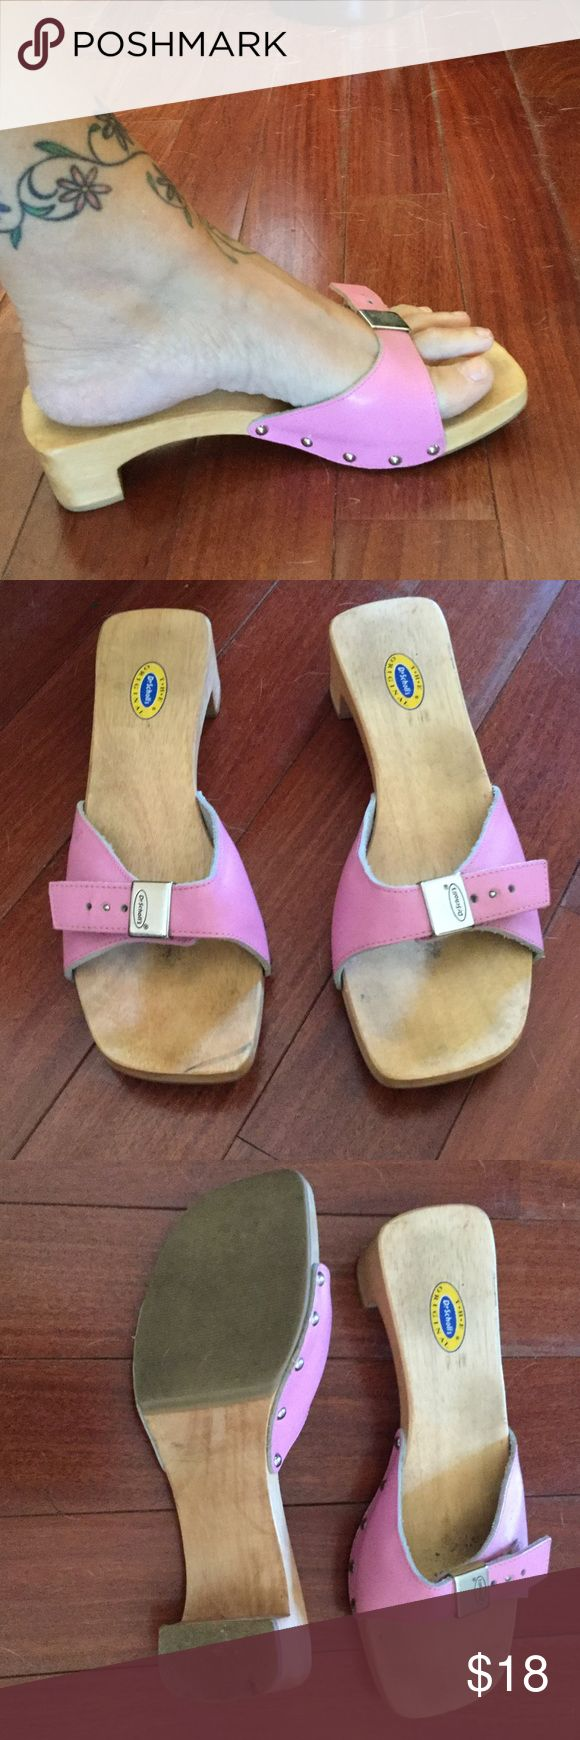 Pink Dr. Scholl's sandals Pink Leather sandals with 1.5inch wooden heel. There is wear to the shoe as you can see in the pictures. The pink leather and buckle are in great condition....little scuff on the pink.....as shown ......just wear to the sole of the shoe 👠 dr scholls Shoes Sandals